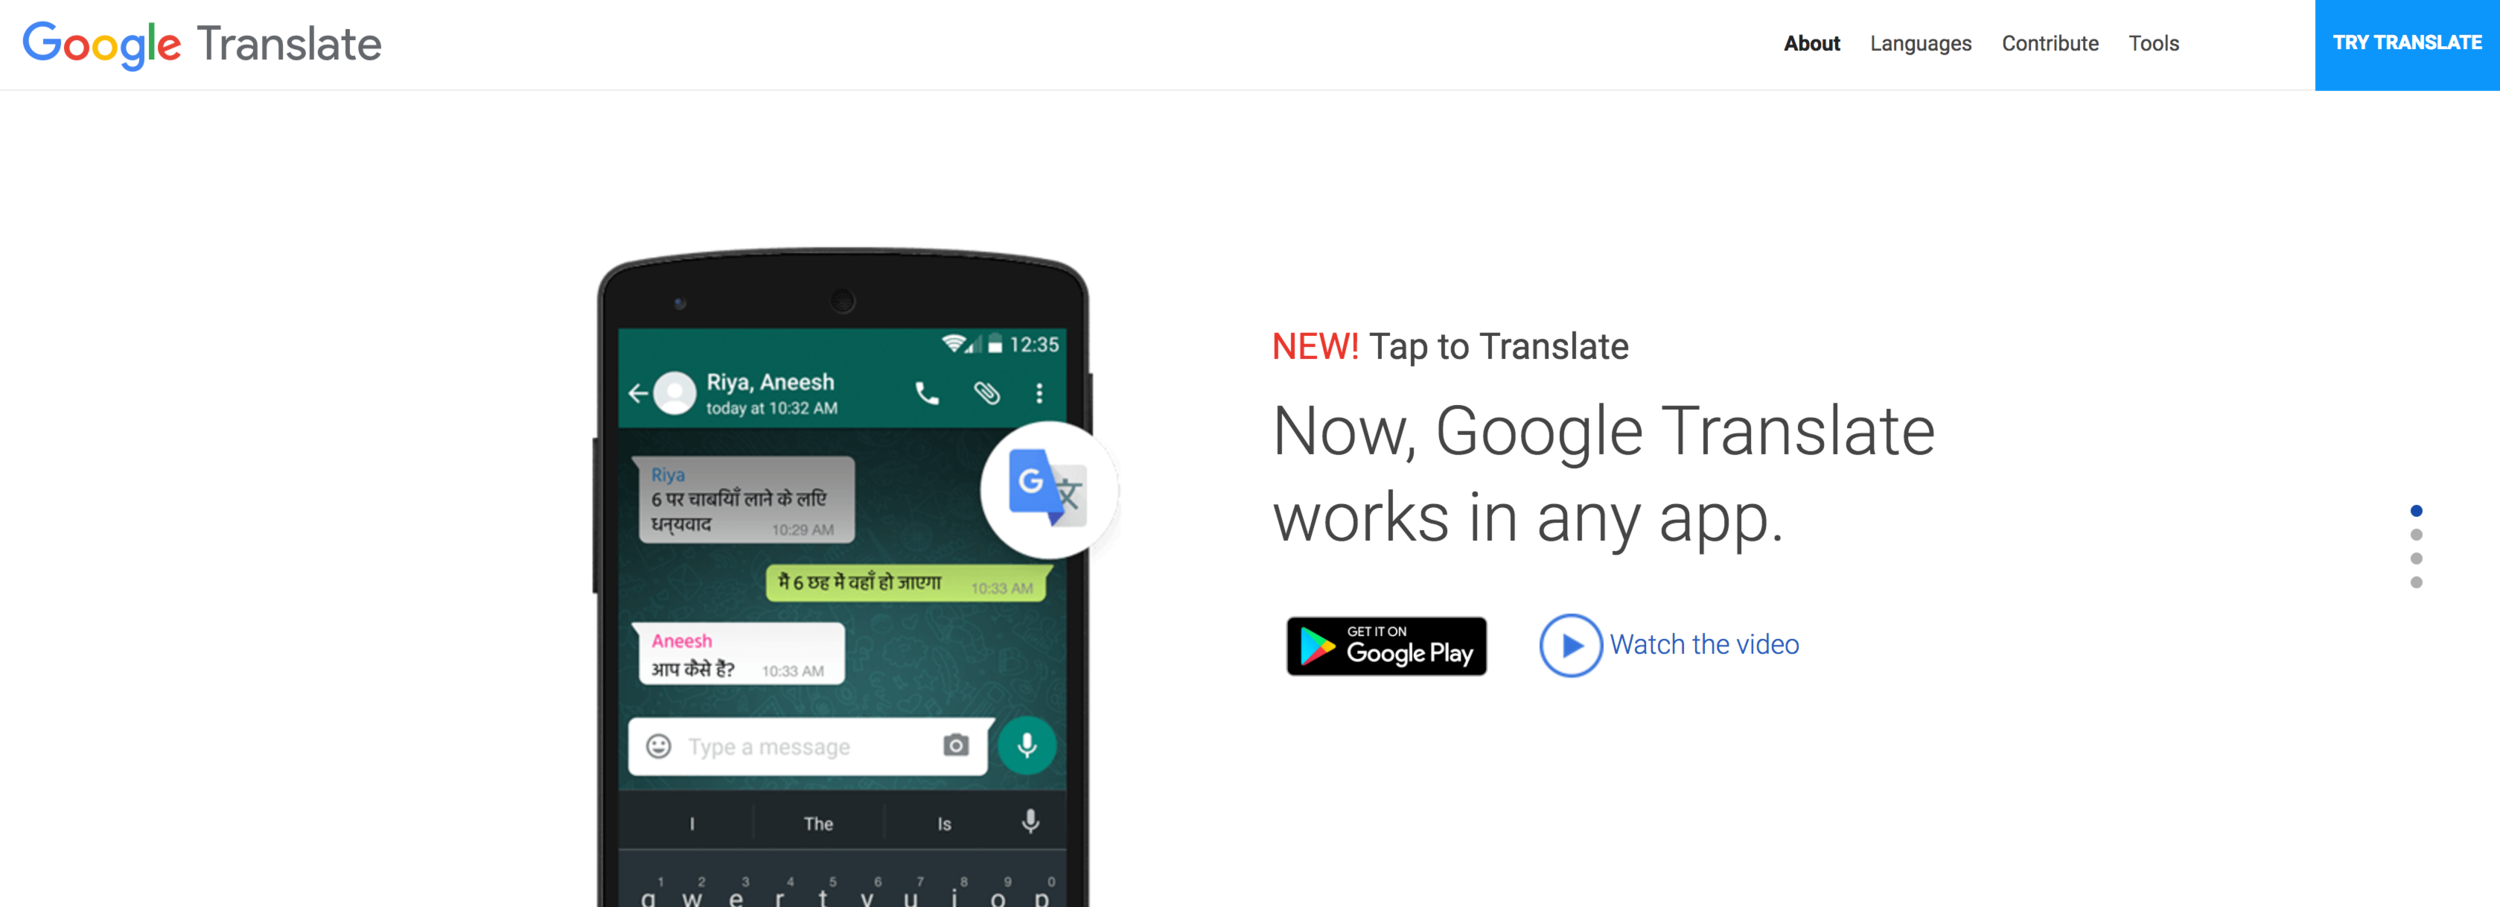 A screenshot of the Google Trasnlate app in action.